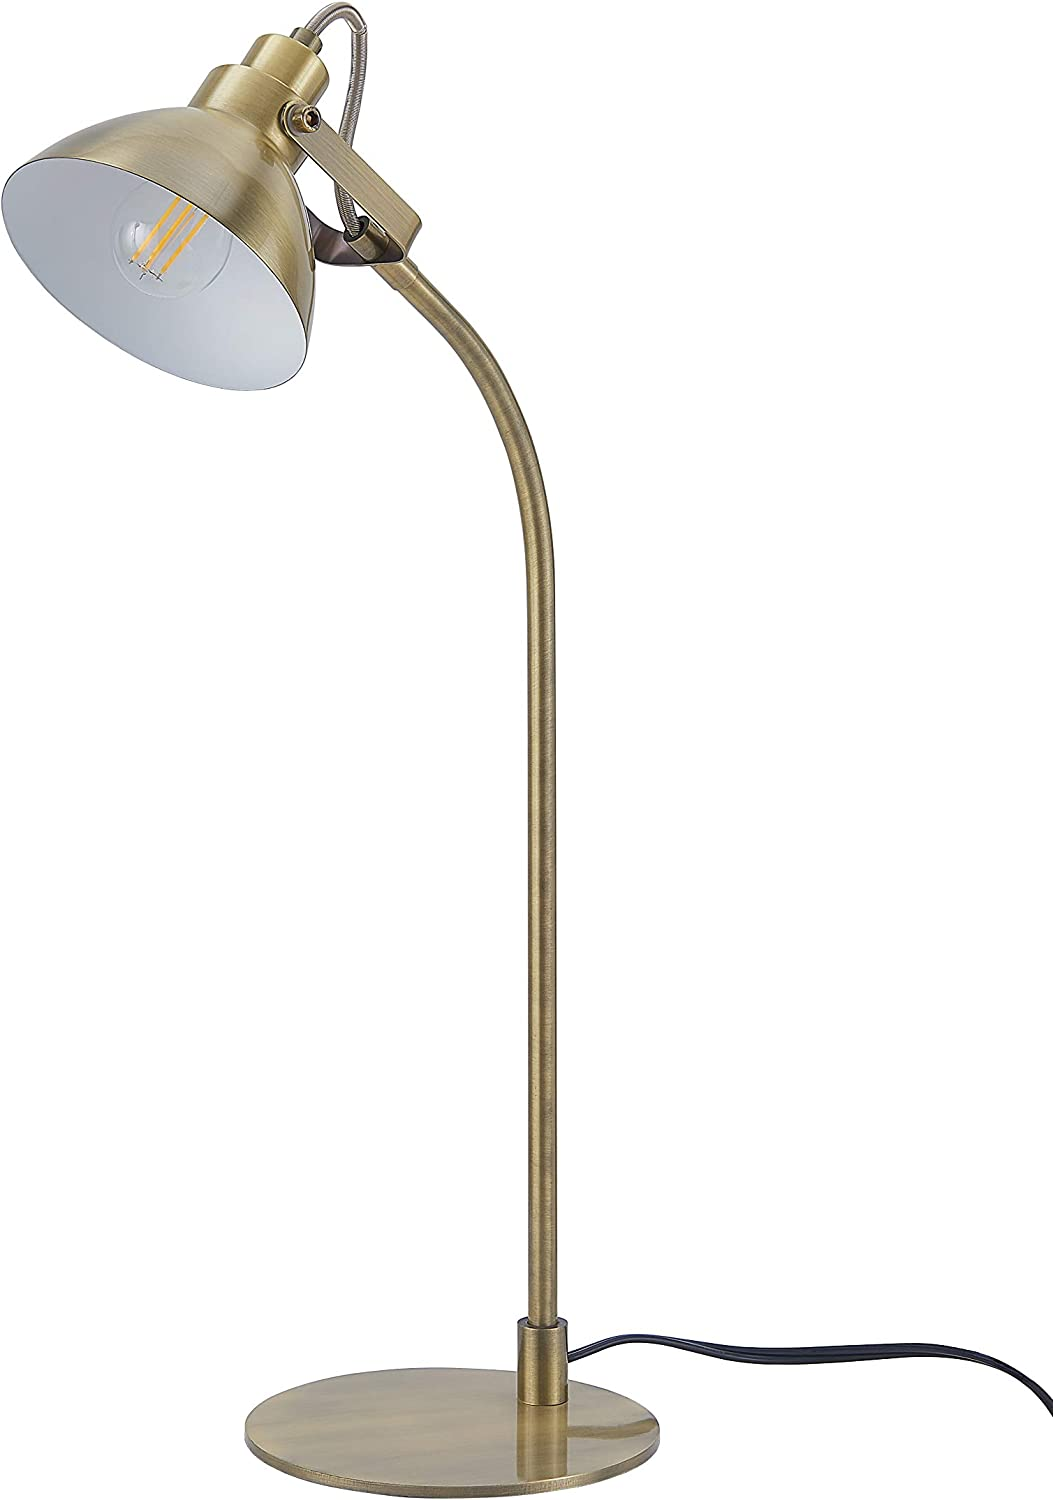 Archiology Ottone Desk Lamp, Traditional Brass Plated Table Light and Lampshade, Simple Fixture for Home Office Studio, 22